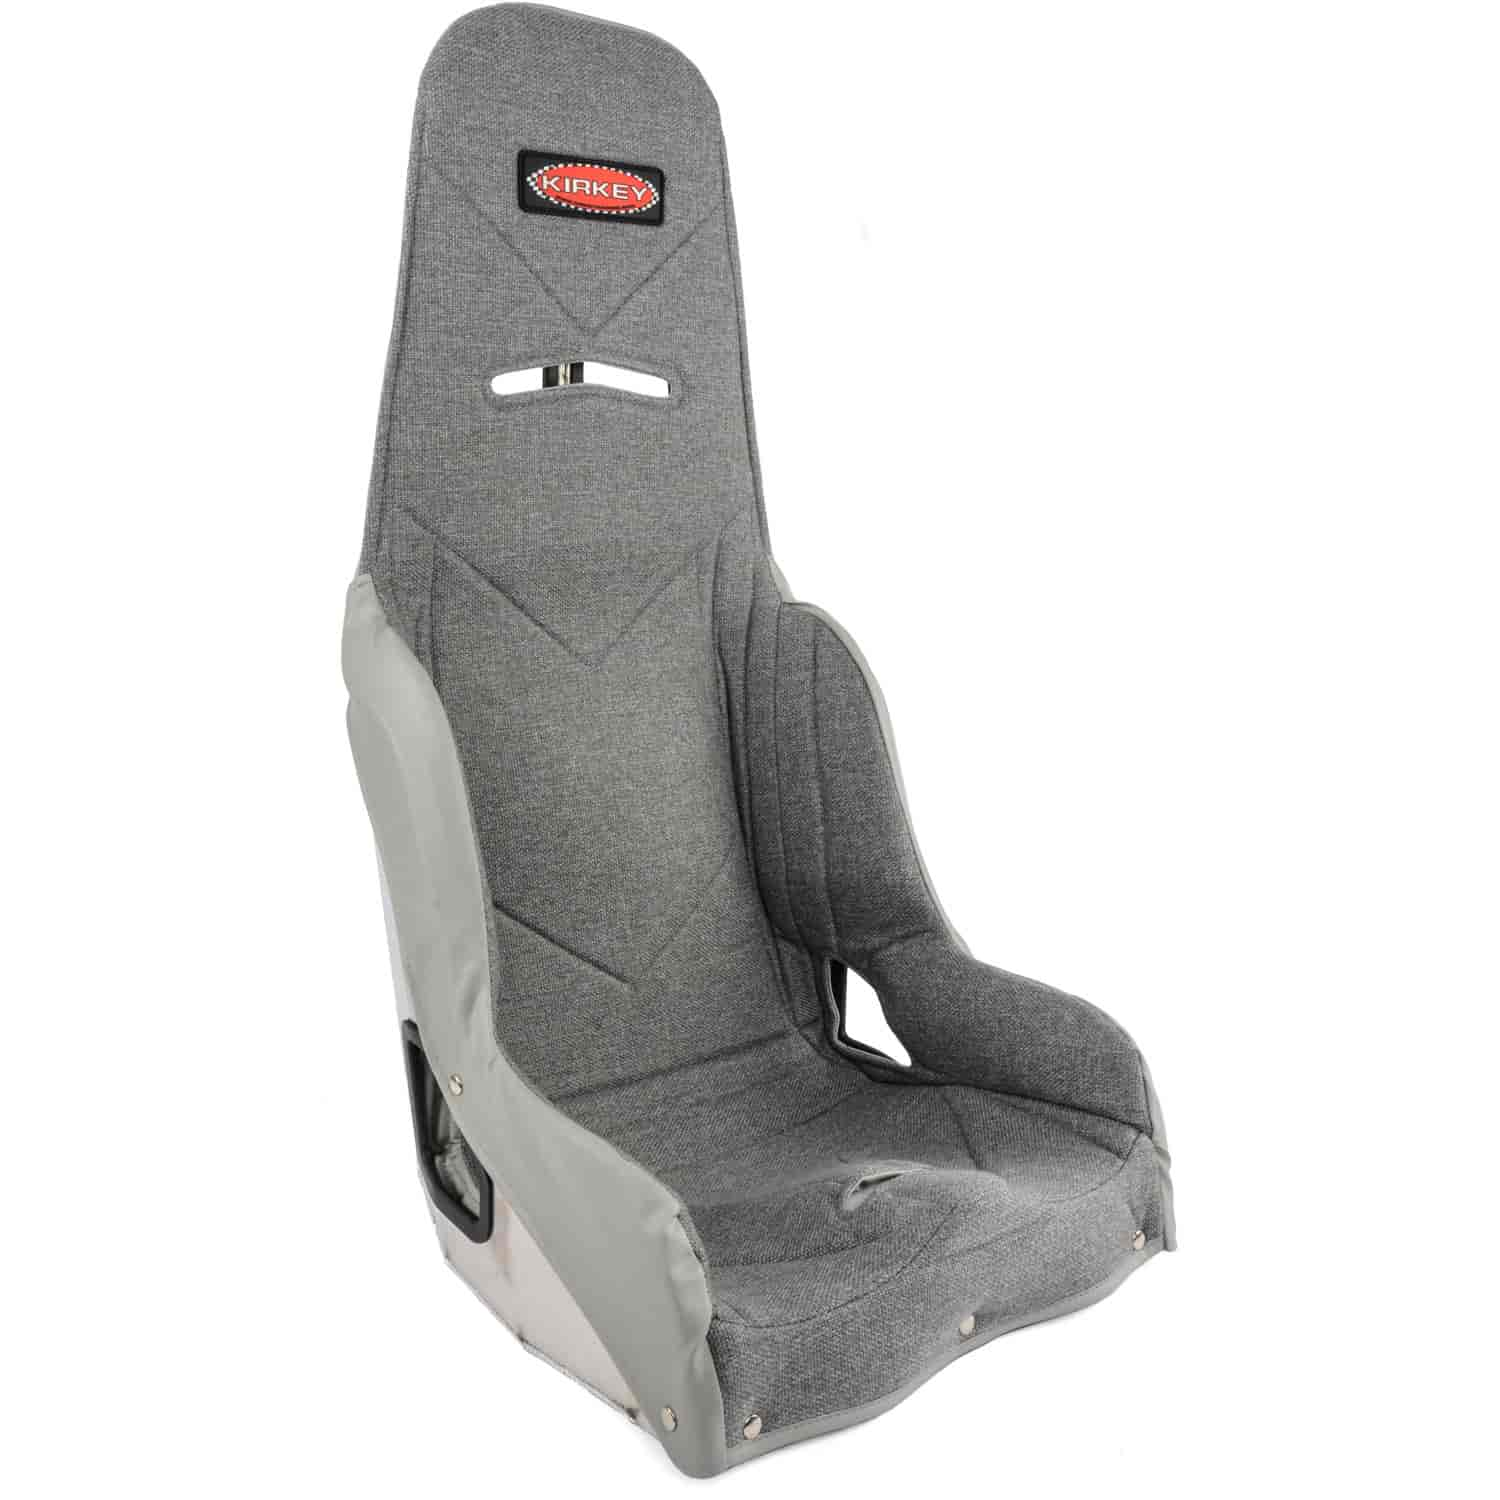 Kirkey 41917 - Kirkey Aluminum Pro Street Drag Racing Seats